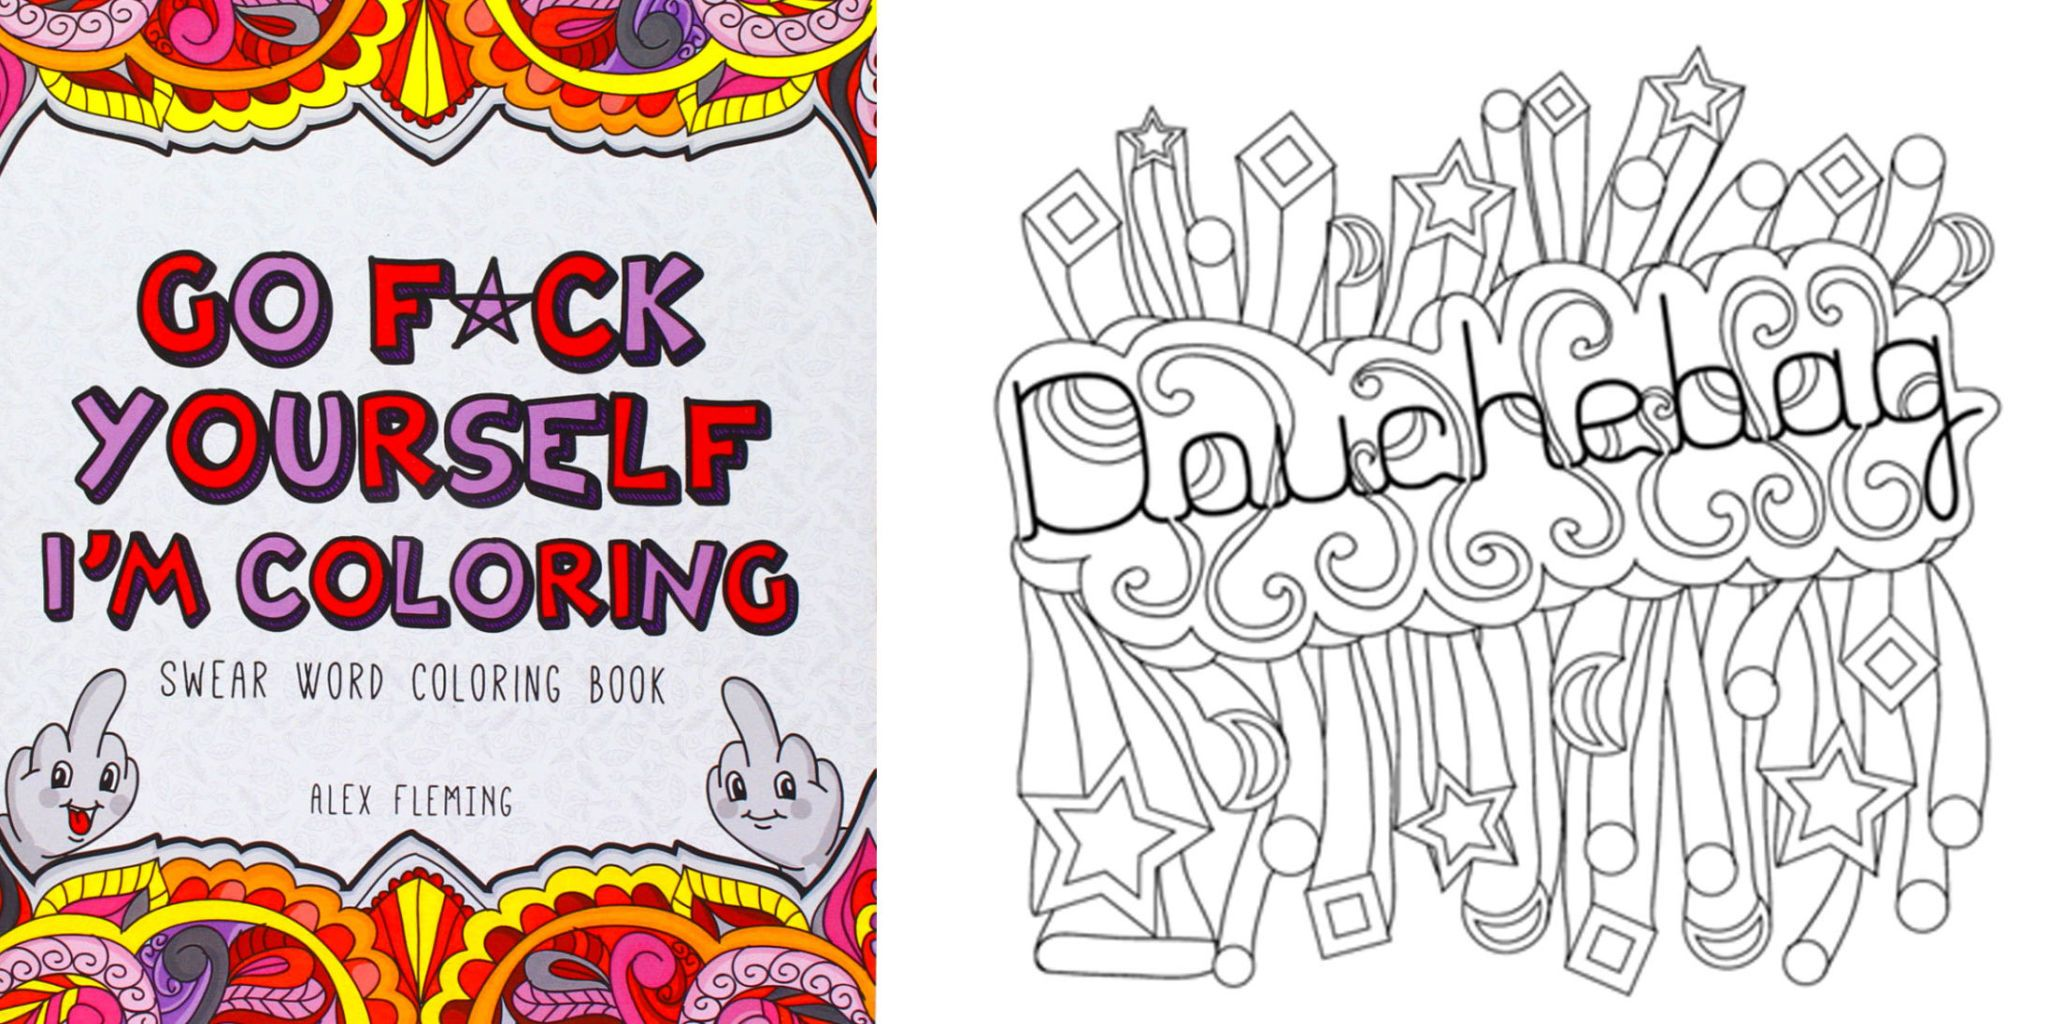 - Swear Word Adult Color Book - Adult Coloring Book With Curse Words